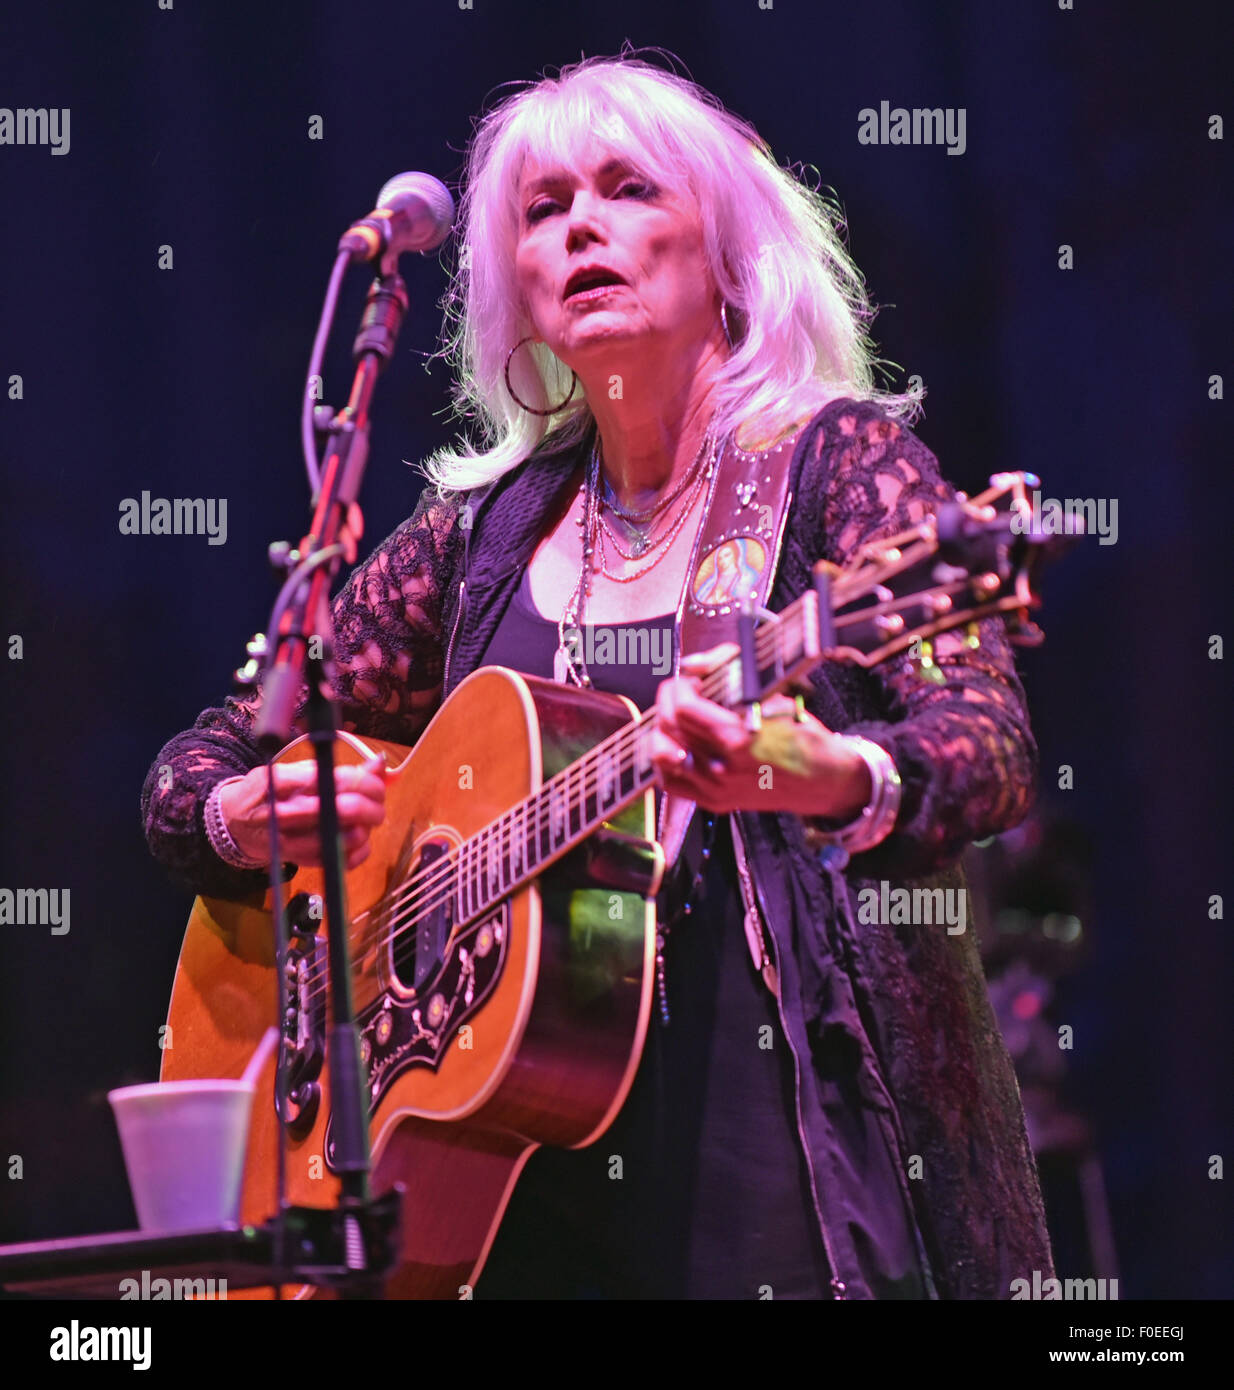 Cropredy, Oxfordshire, UK. 13th Aug, 2015. Emmylou Harris & Rodney Crowell headling on Thursday at the Fairports - Stock Image